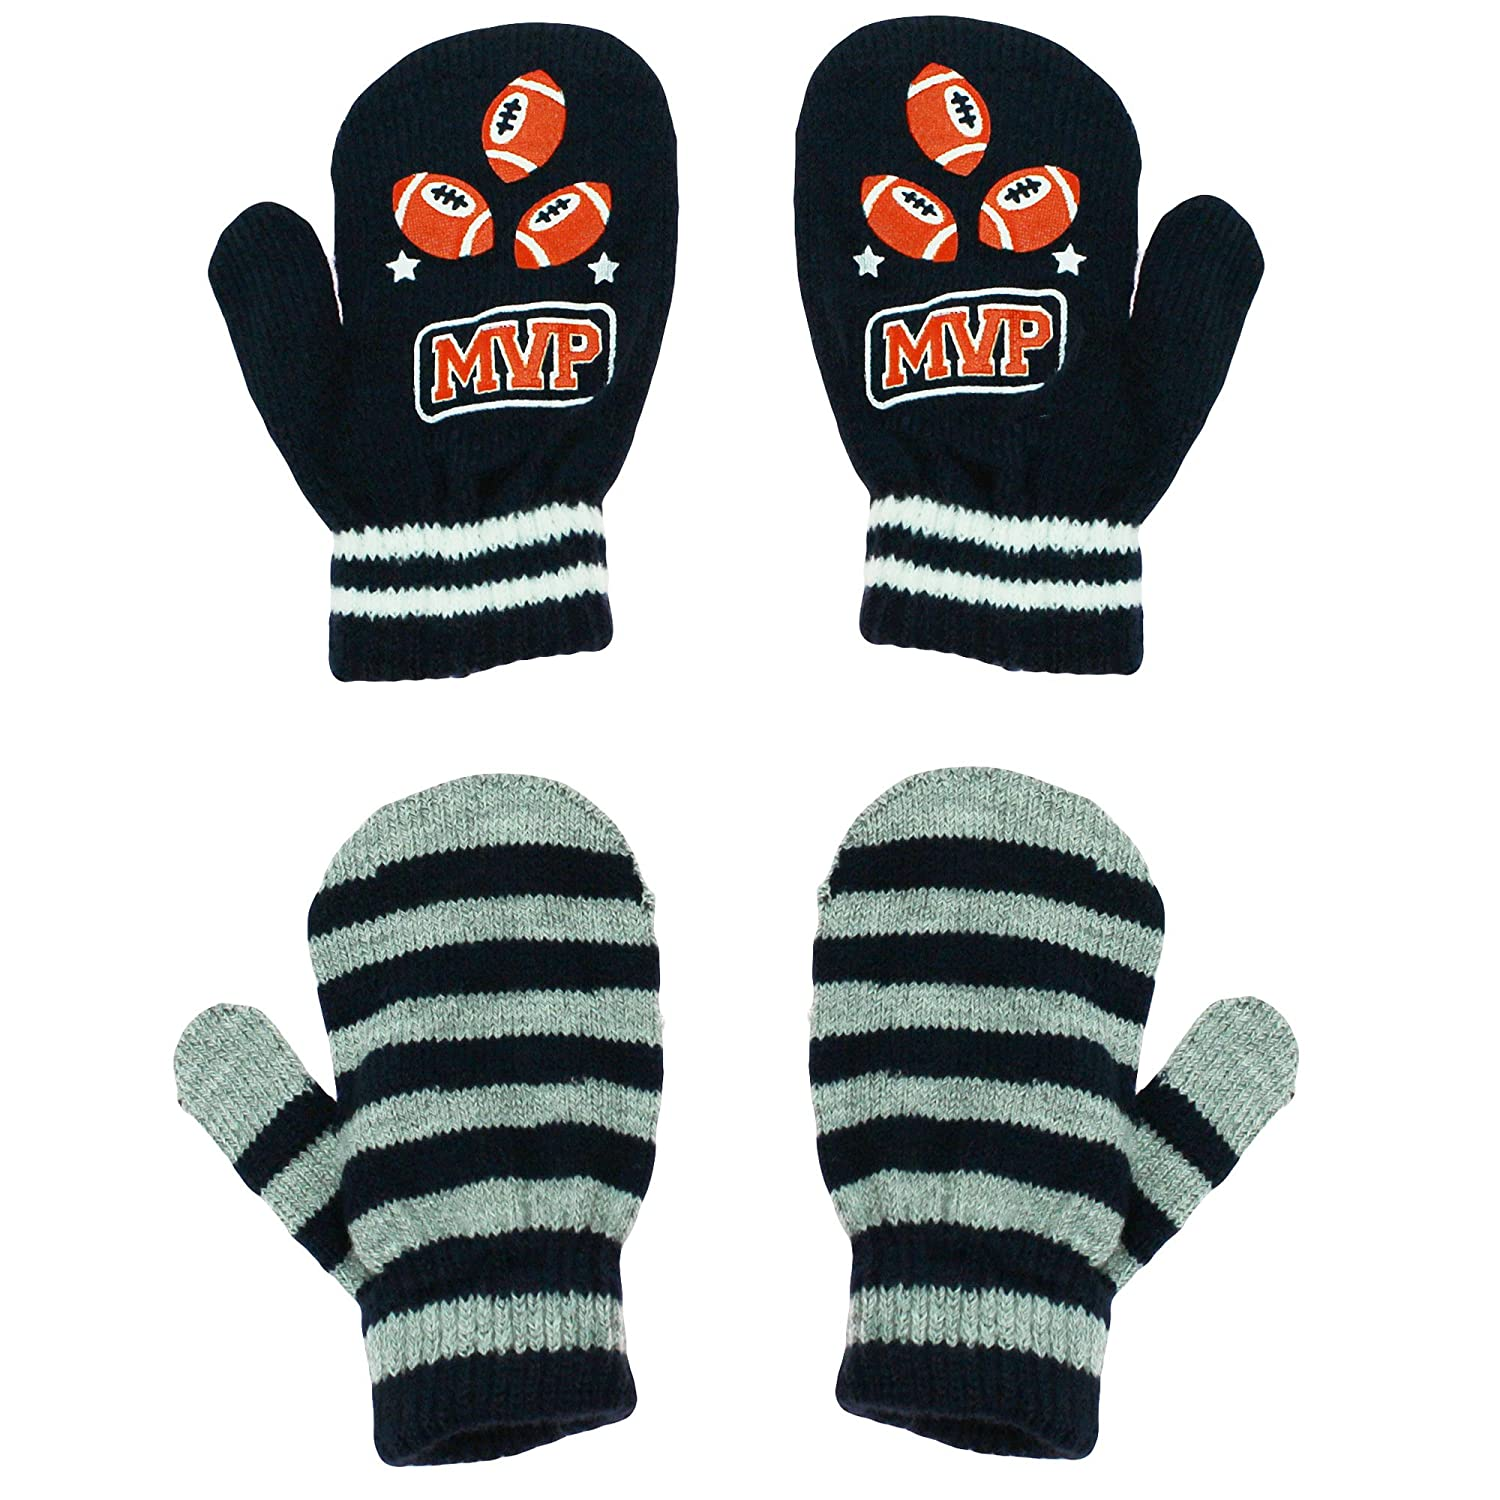 Little Me 2 Pack Stretch Boys Winter Mittens MVP Football Navy Grey Toddler 2T-4T NSD-LTMMIT-MVP-TOD